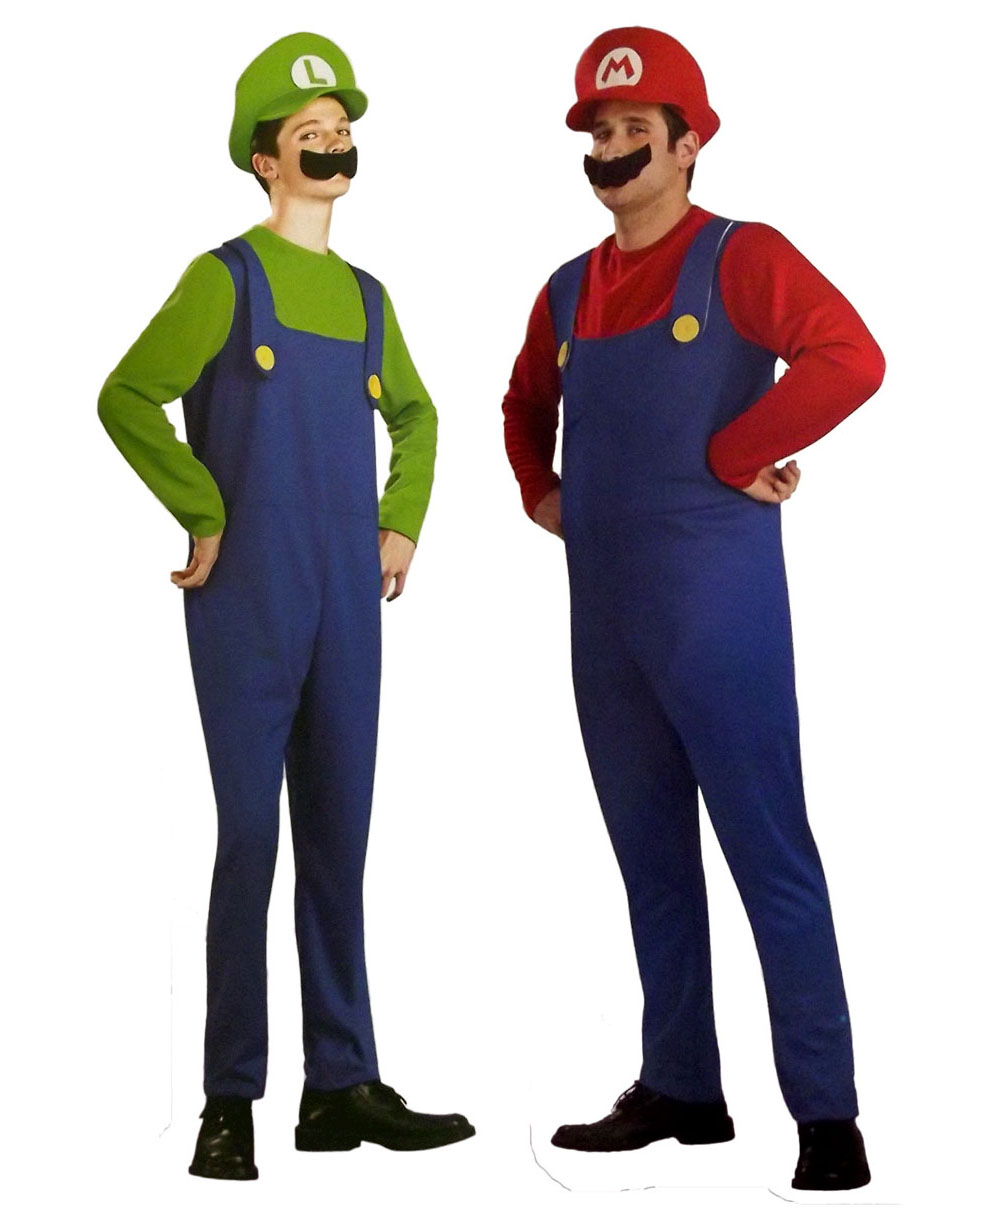 Adult Halloween Masquerade Costume Adult Clothes Cosplay Costume Male  Costume Super Mario